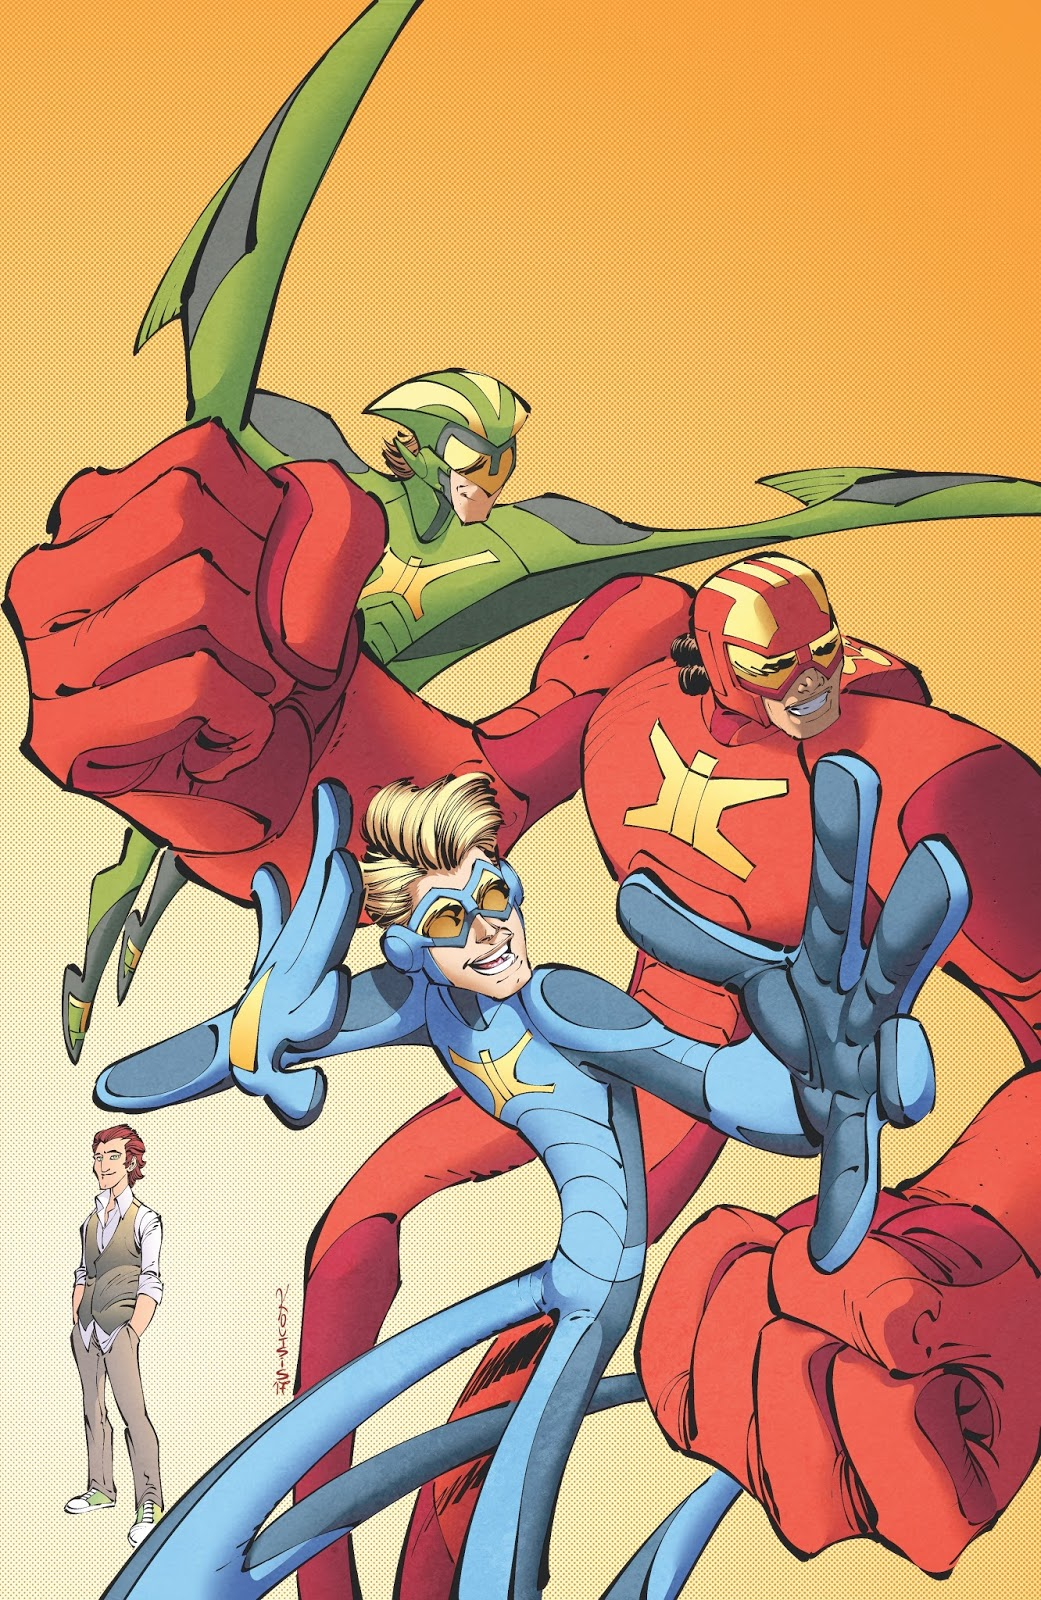 The Netflix Animated Series Stretch Armstrong And Flex Fighters Based On Hasbro Property Receives A Comic Book Tie In From IDW Publishing